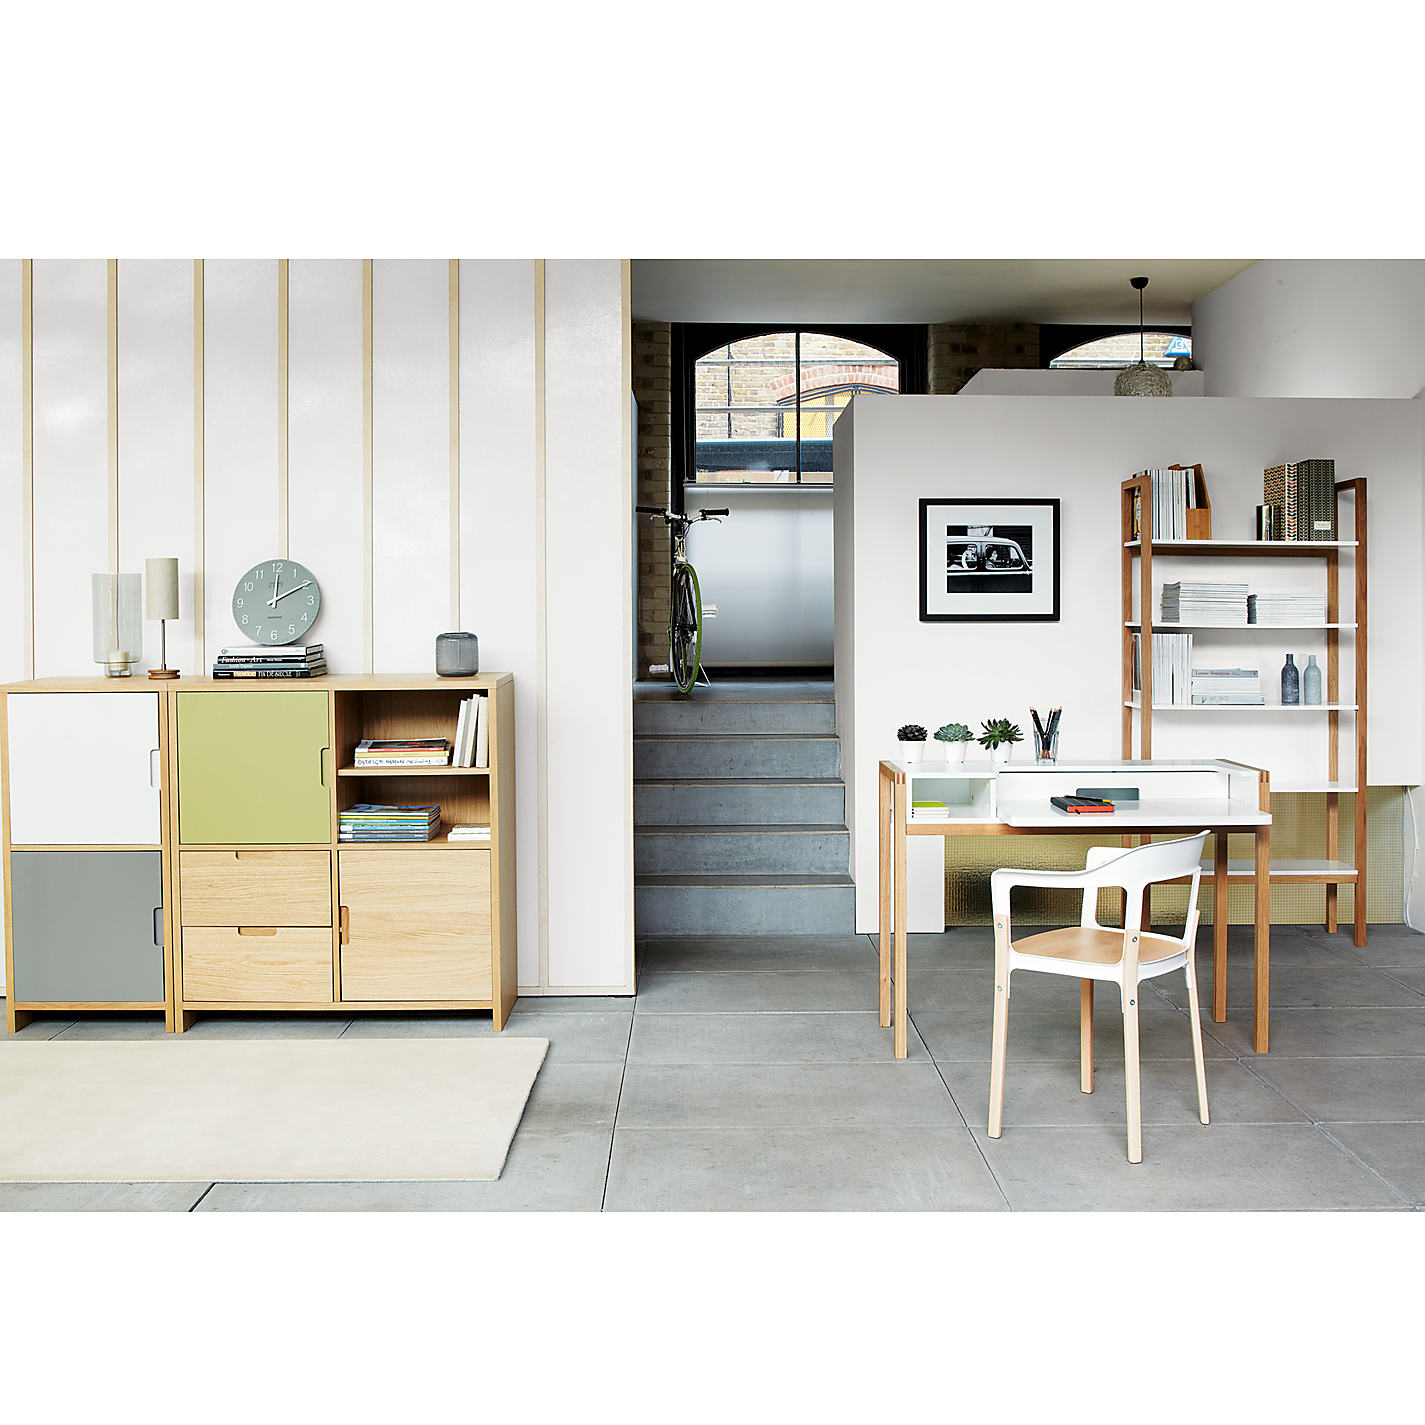 Lewis storage best storage design 2017 for Home design john lewis